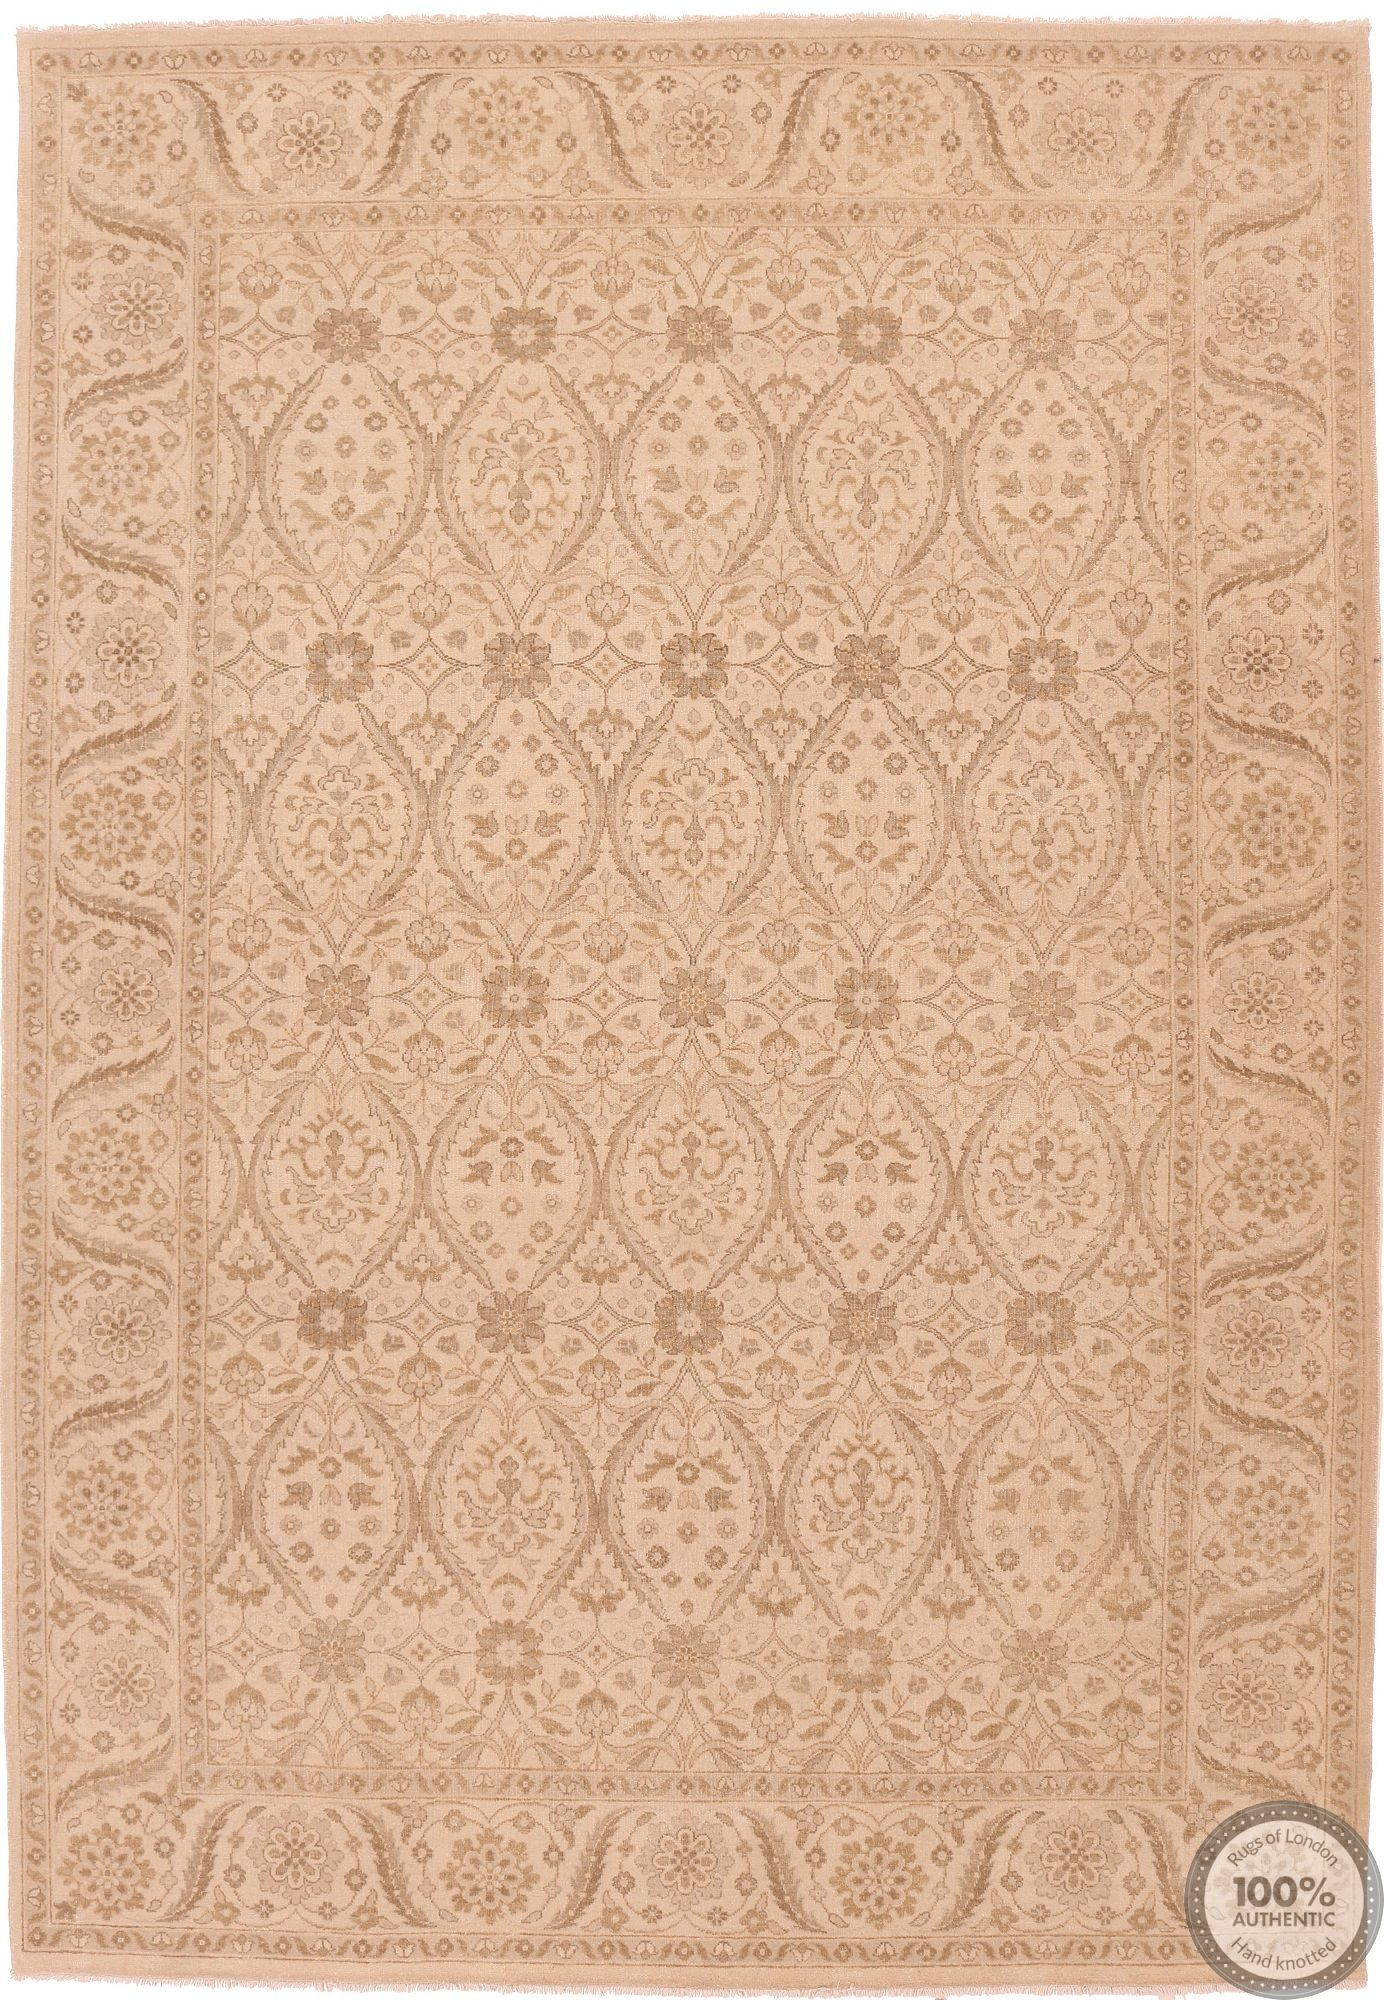 Fine Garous Ziegler design Indian rug - 9'1 x 6'4